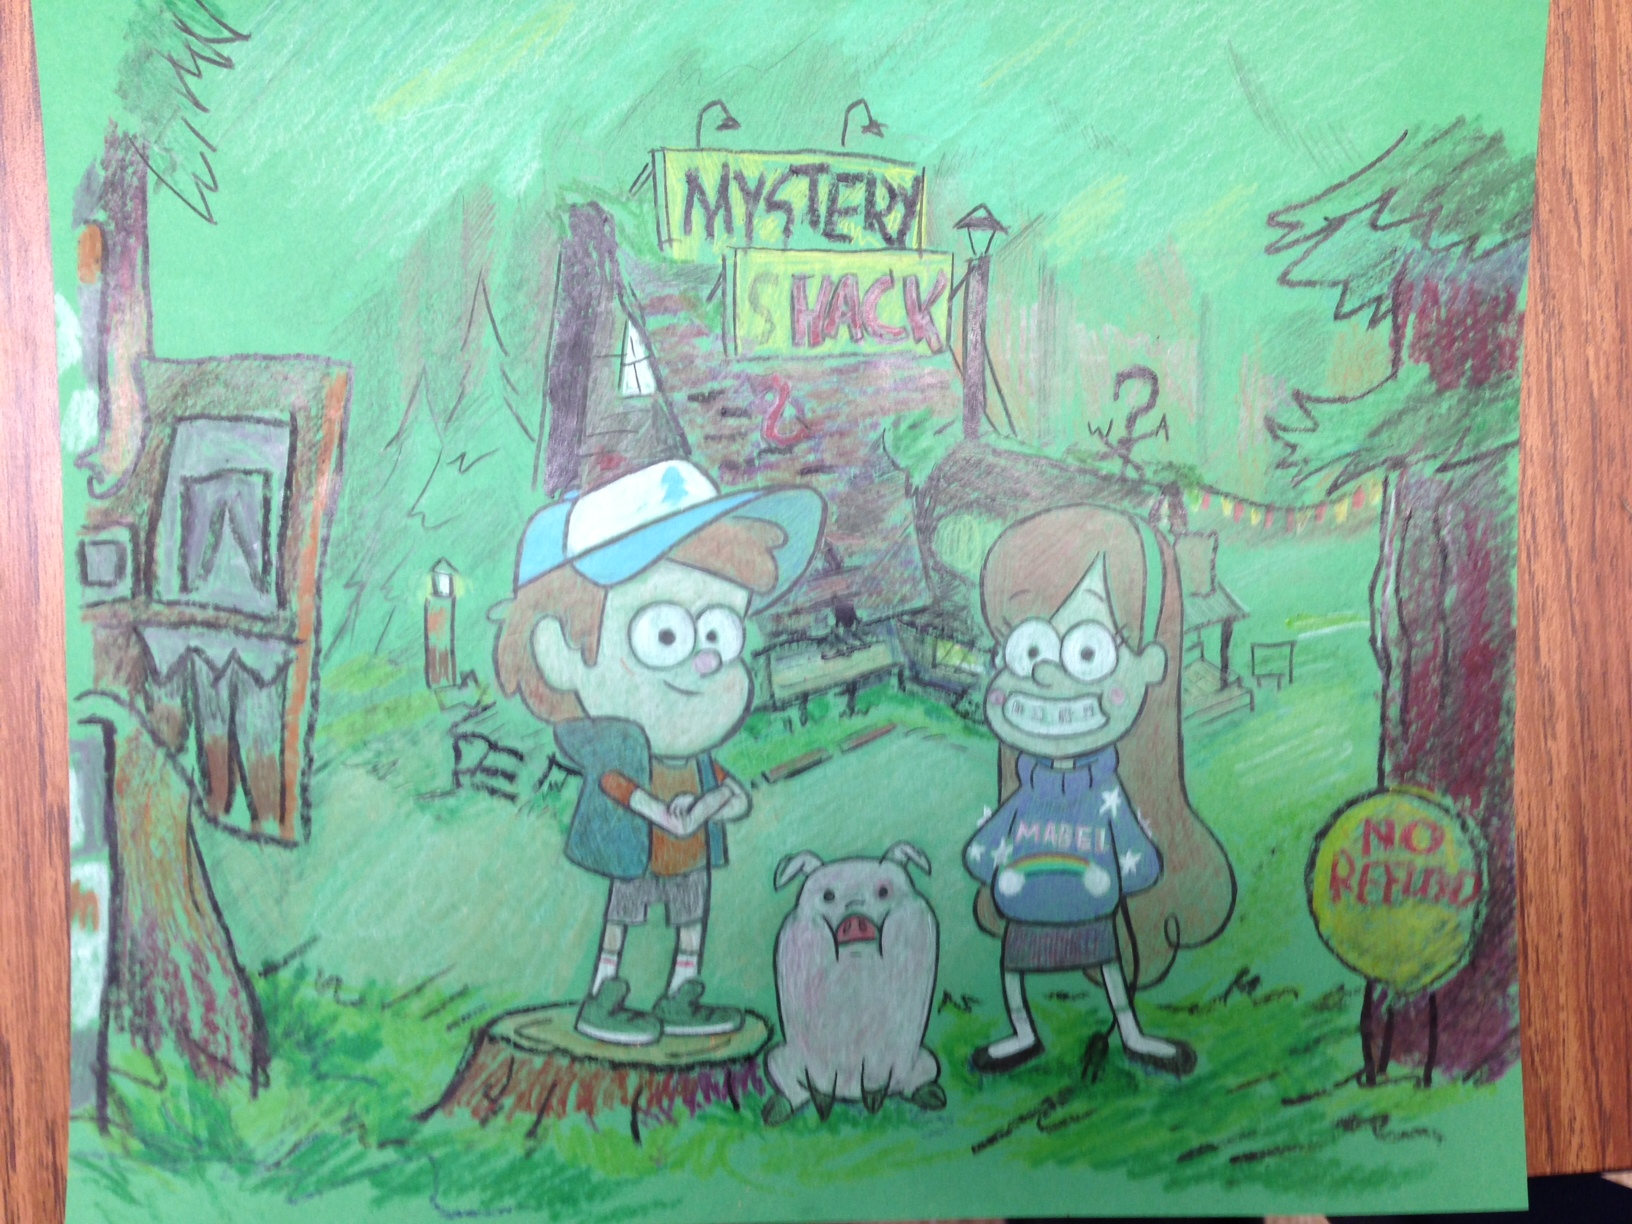 This was for a larger kid who did not want a crown. He instead wanted me to draw a picture of the characters from the clever, witty, funny and beautifully show   Gravity Falls   from the Disney channel.  For those who do not know,  Gravity Falls  revolves around the characters Dipper and Mabel Pines as they spend the summer visiting there misery great uncle (Gruncle) Stan, and explore the many mysteries, conspiracies, and bizarre antics of Gravity Falls Oregon.  Gravity Falls  is created by Alex Hirsch a former writer for the  Marvelous Misadventures of Flapjack .